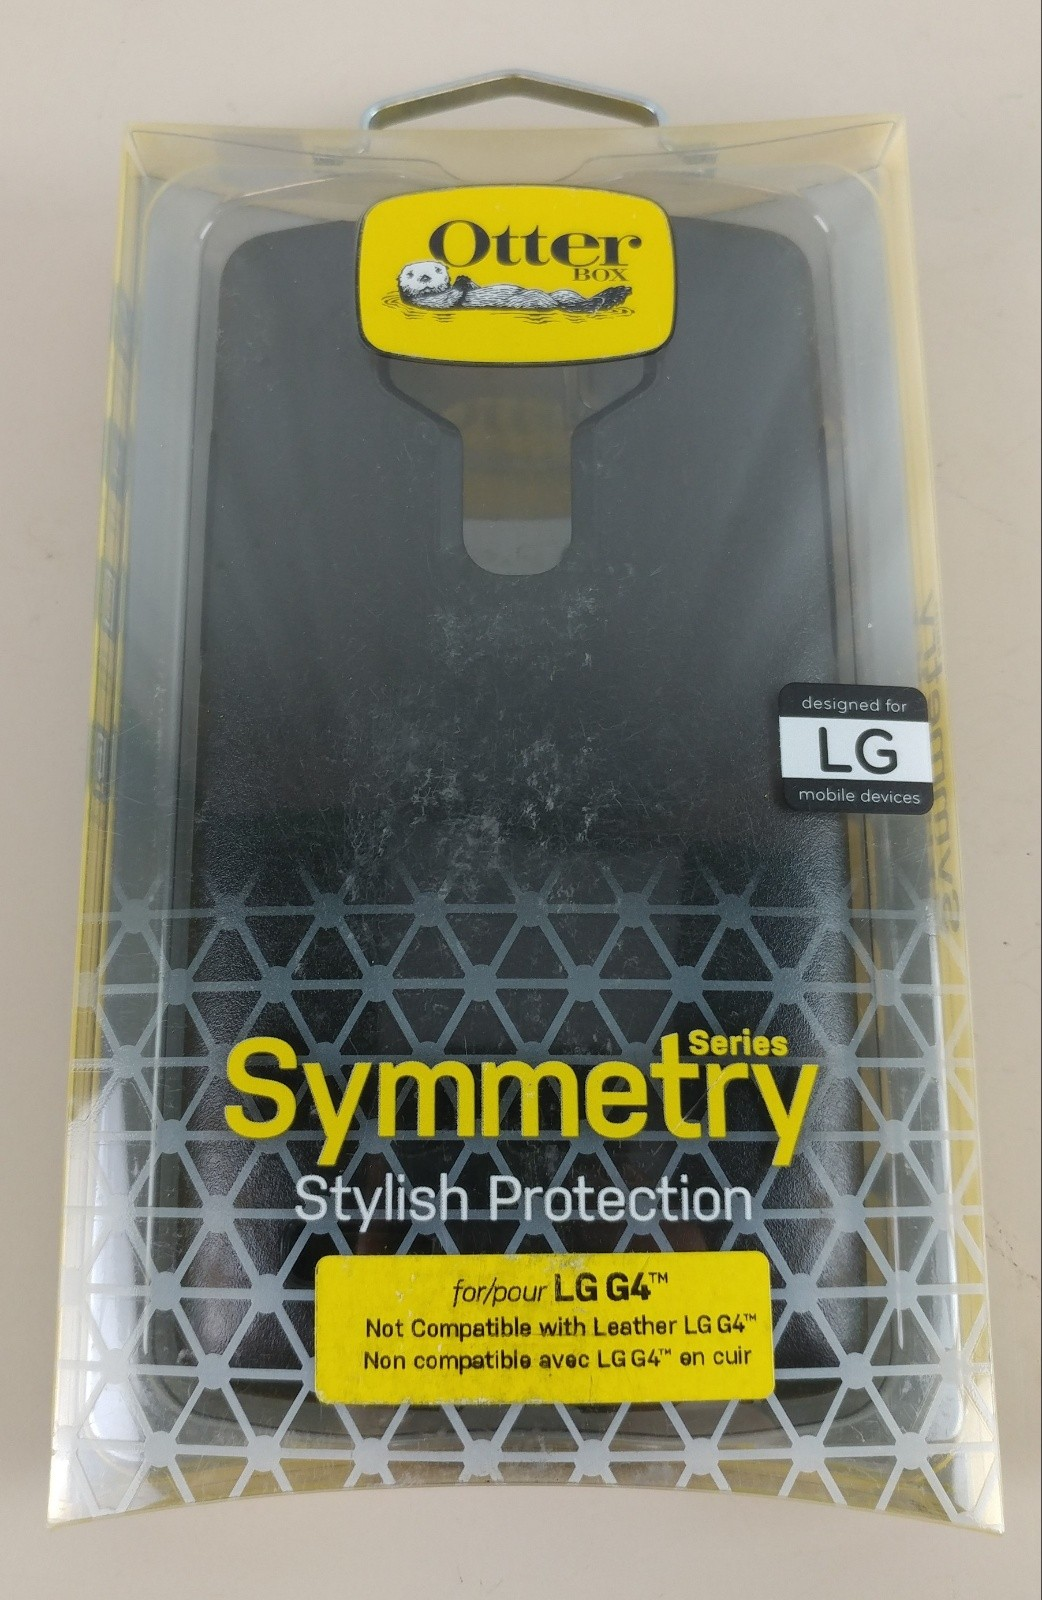 NEW Otterbox Symmetry Case for LG G4 Black